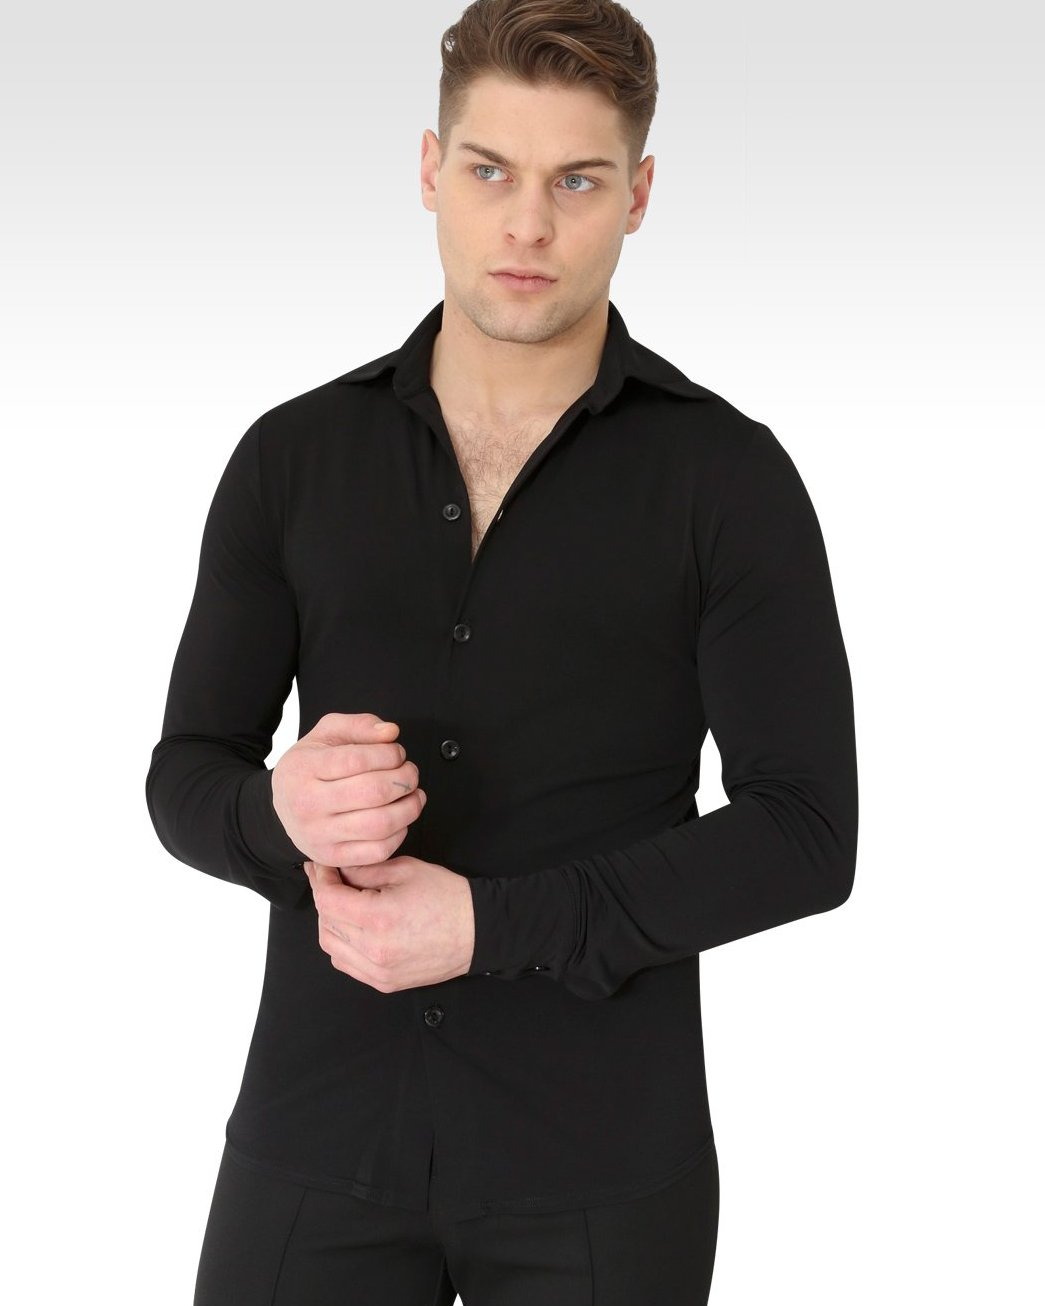 mens dance shirt uk